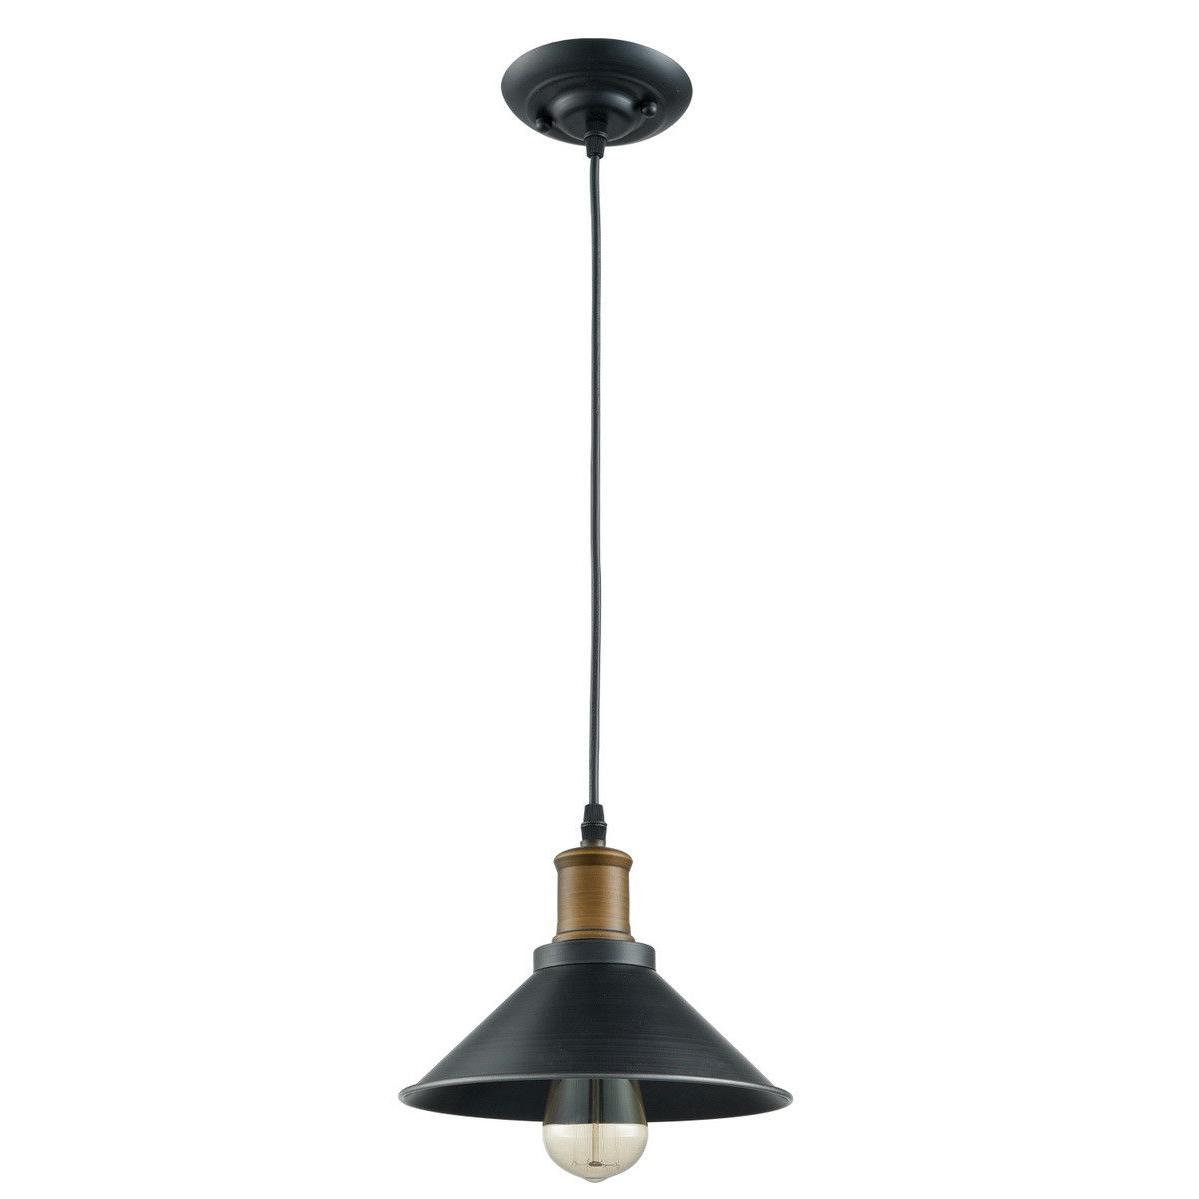 Farmhouse Industrial Ceiling Hanging Metal Black Pendant Lighting